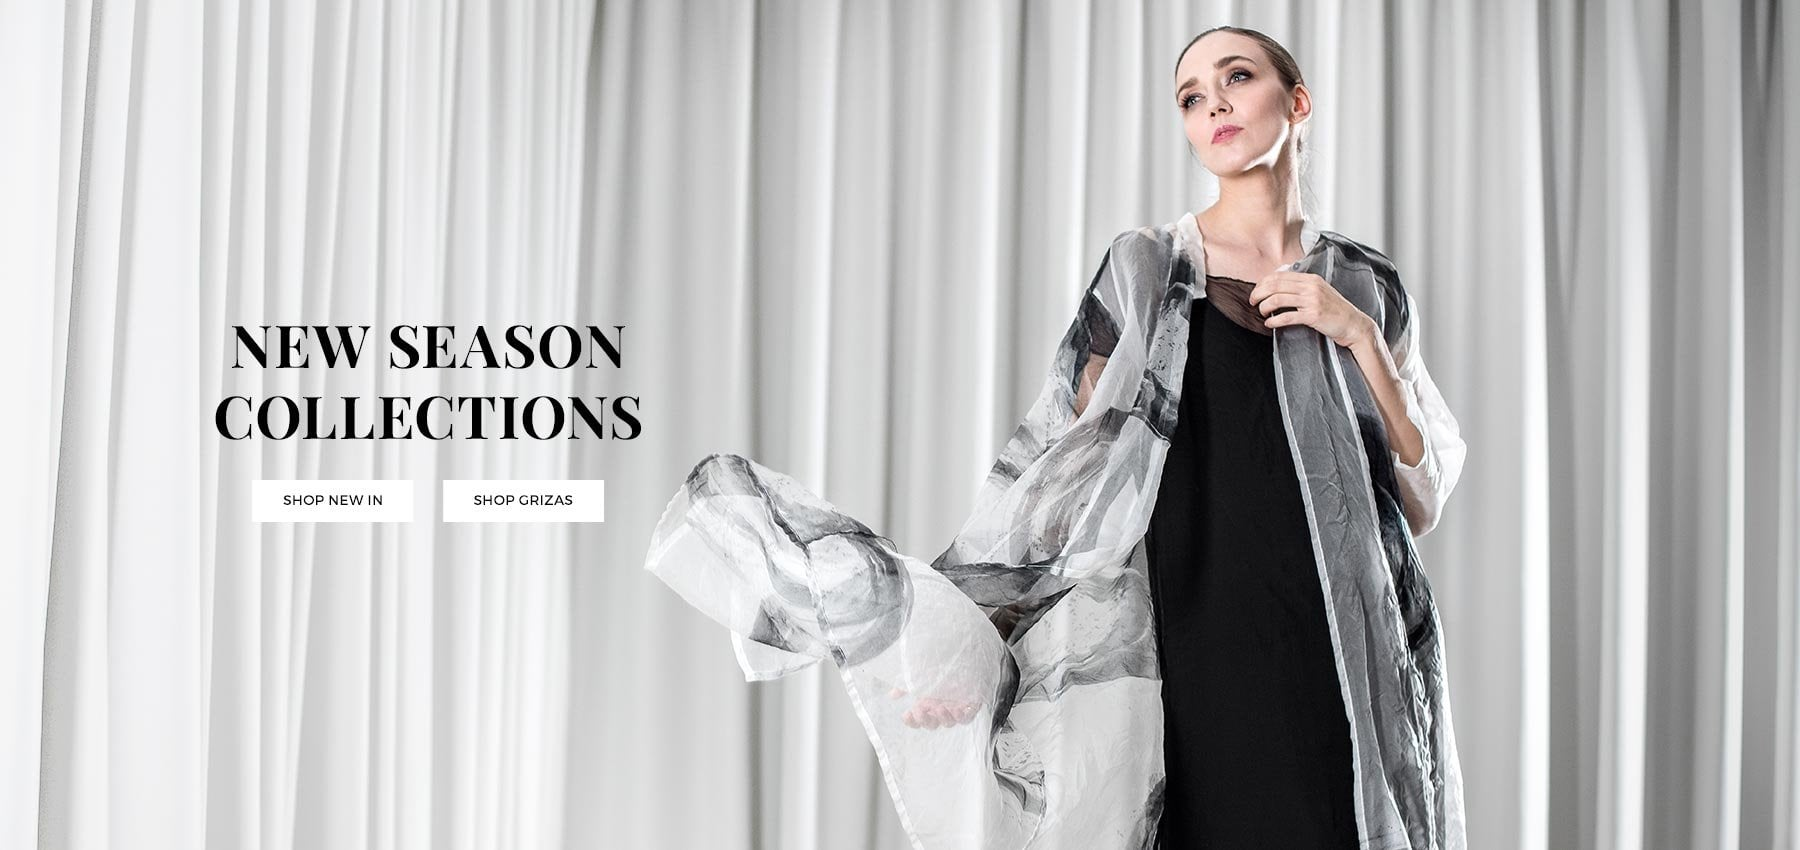 New Season Collections